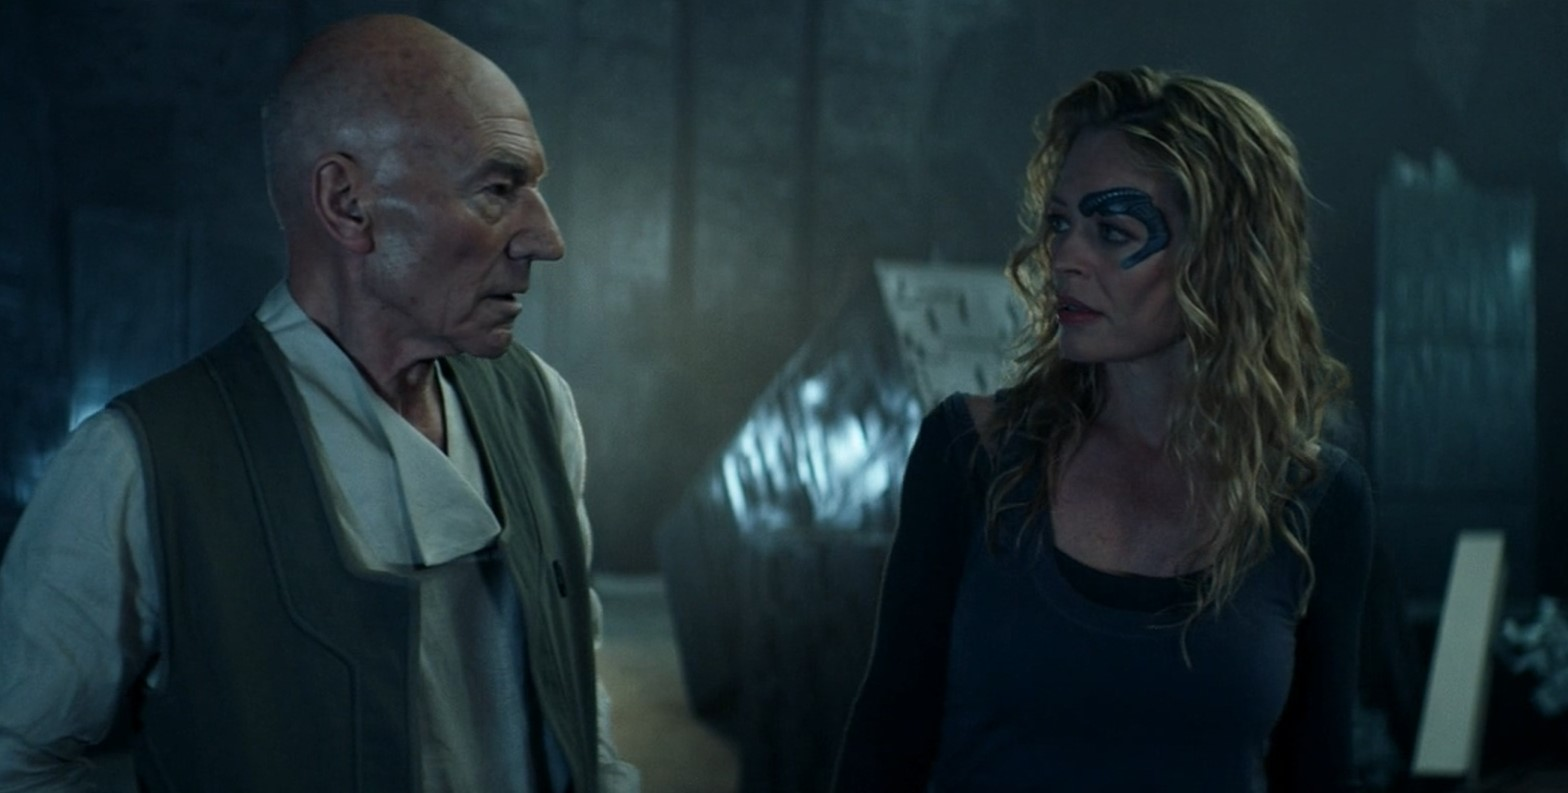 Patrick Stewart and Jeri Ryan in Et in Arcadia Ego, Part 1 (2020)